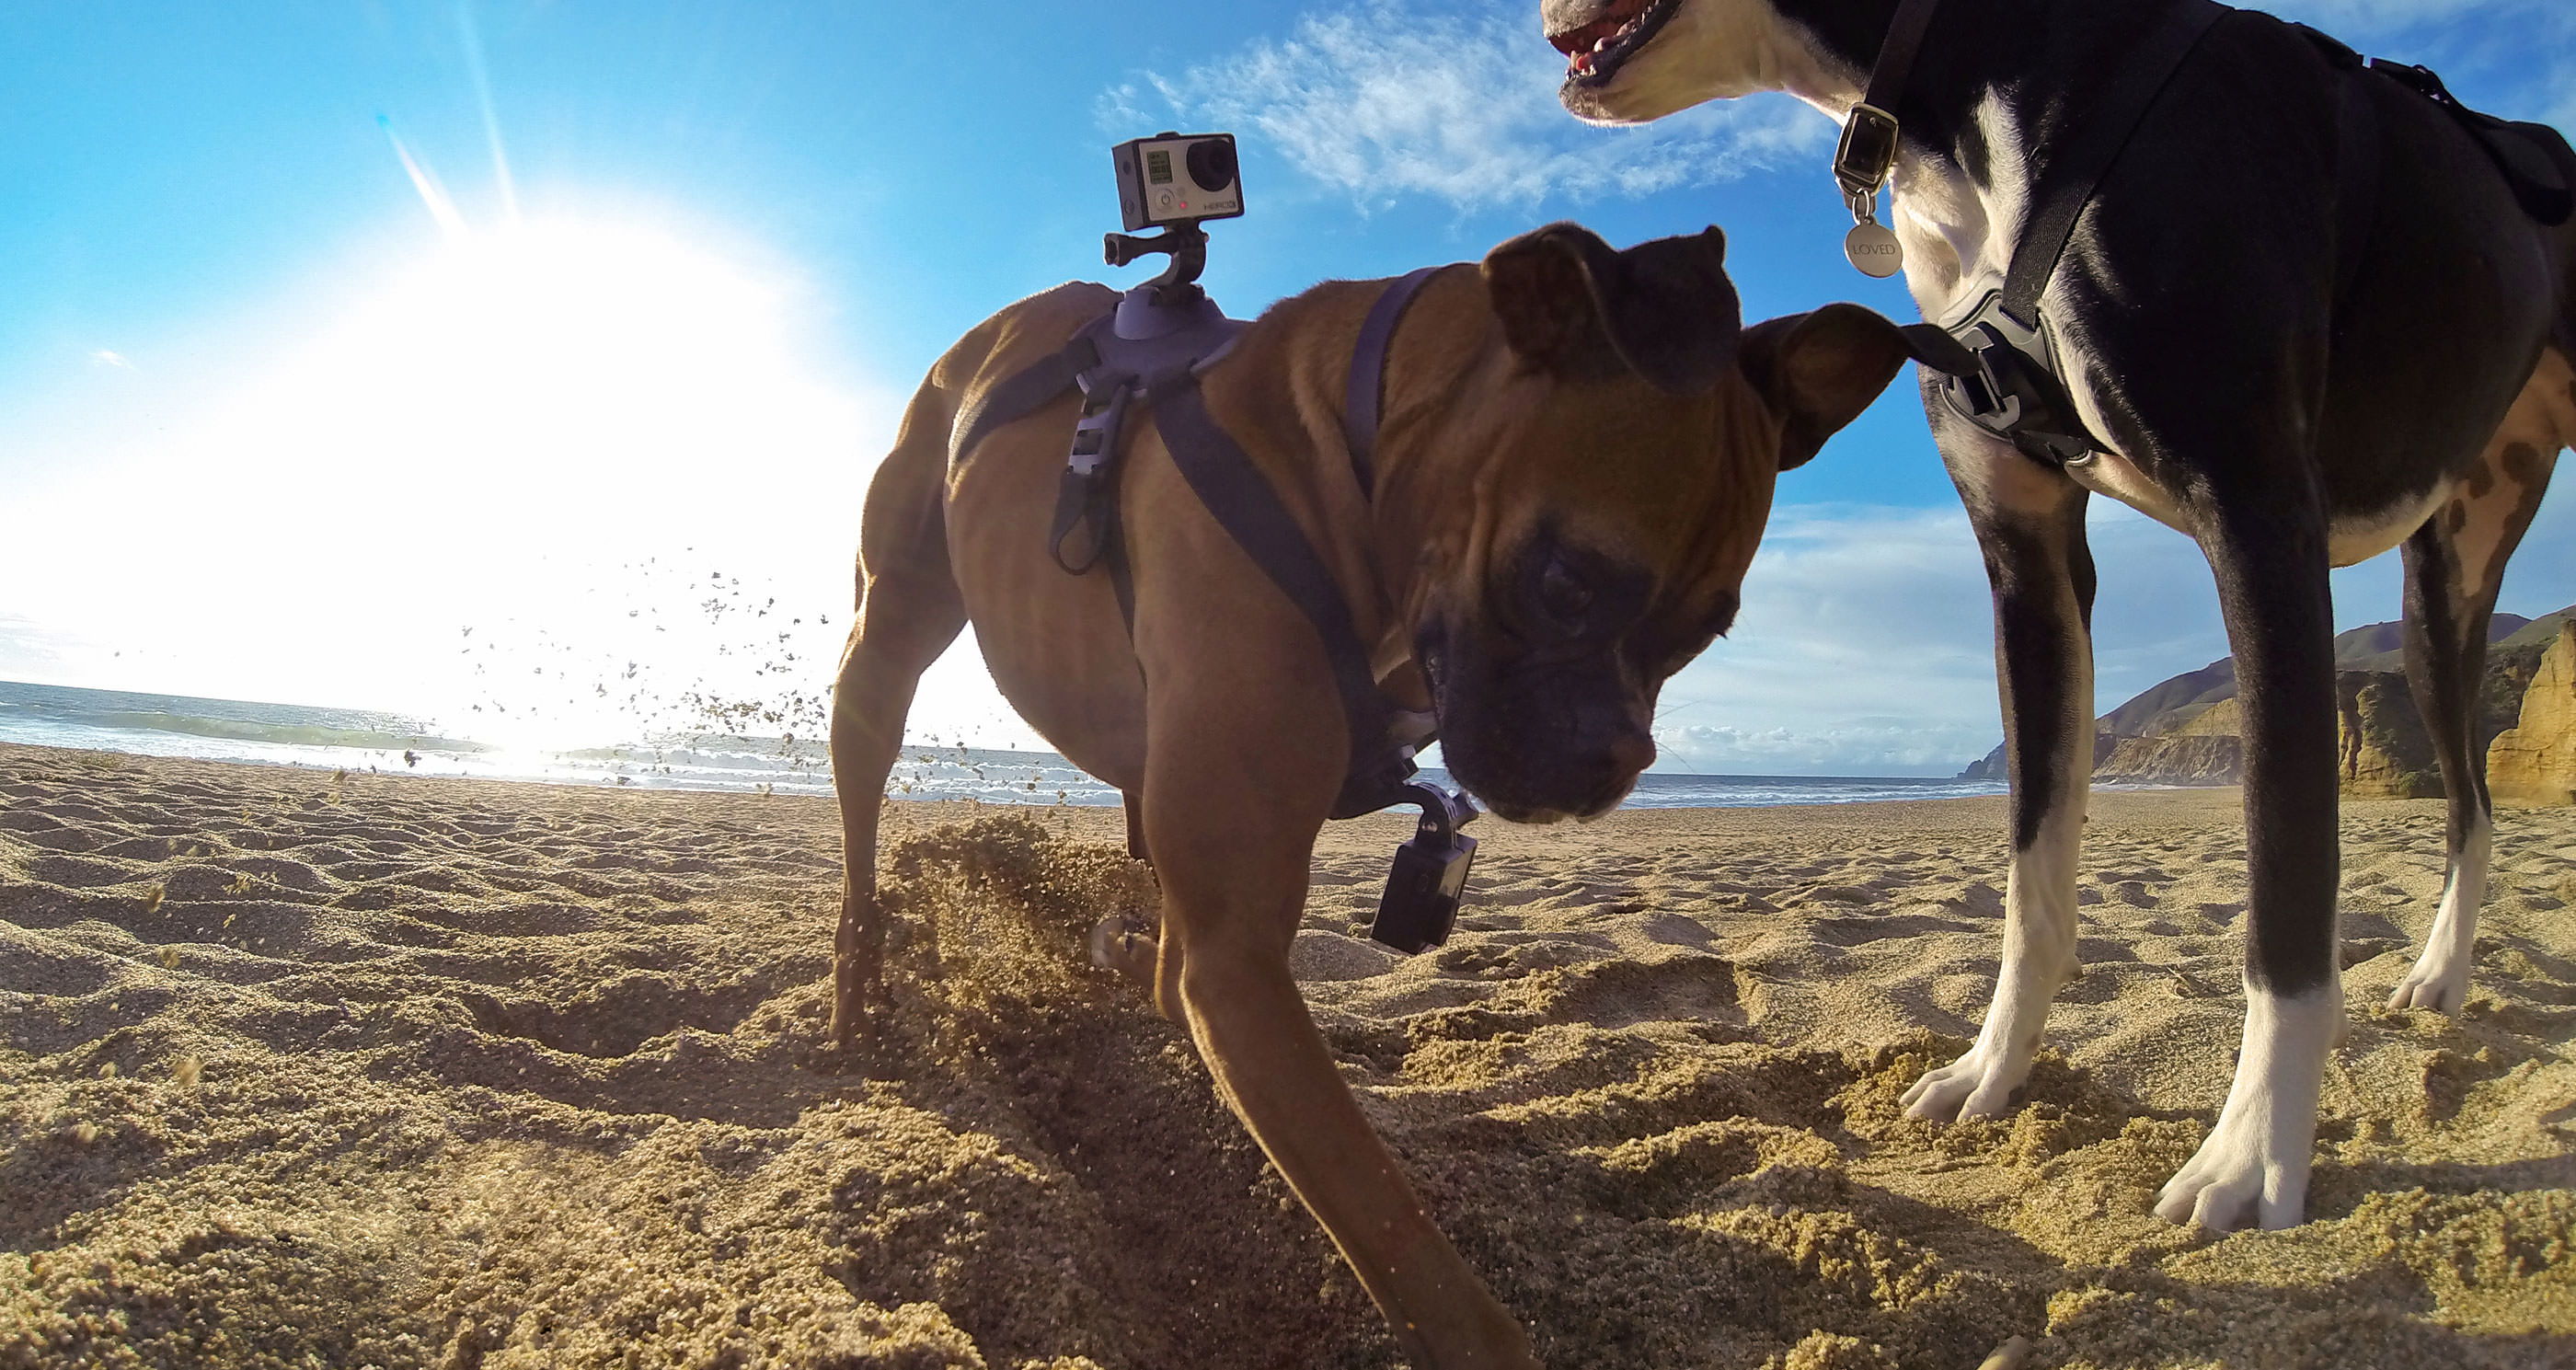 GoPro cuts 270 jobs, stock soars